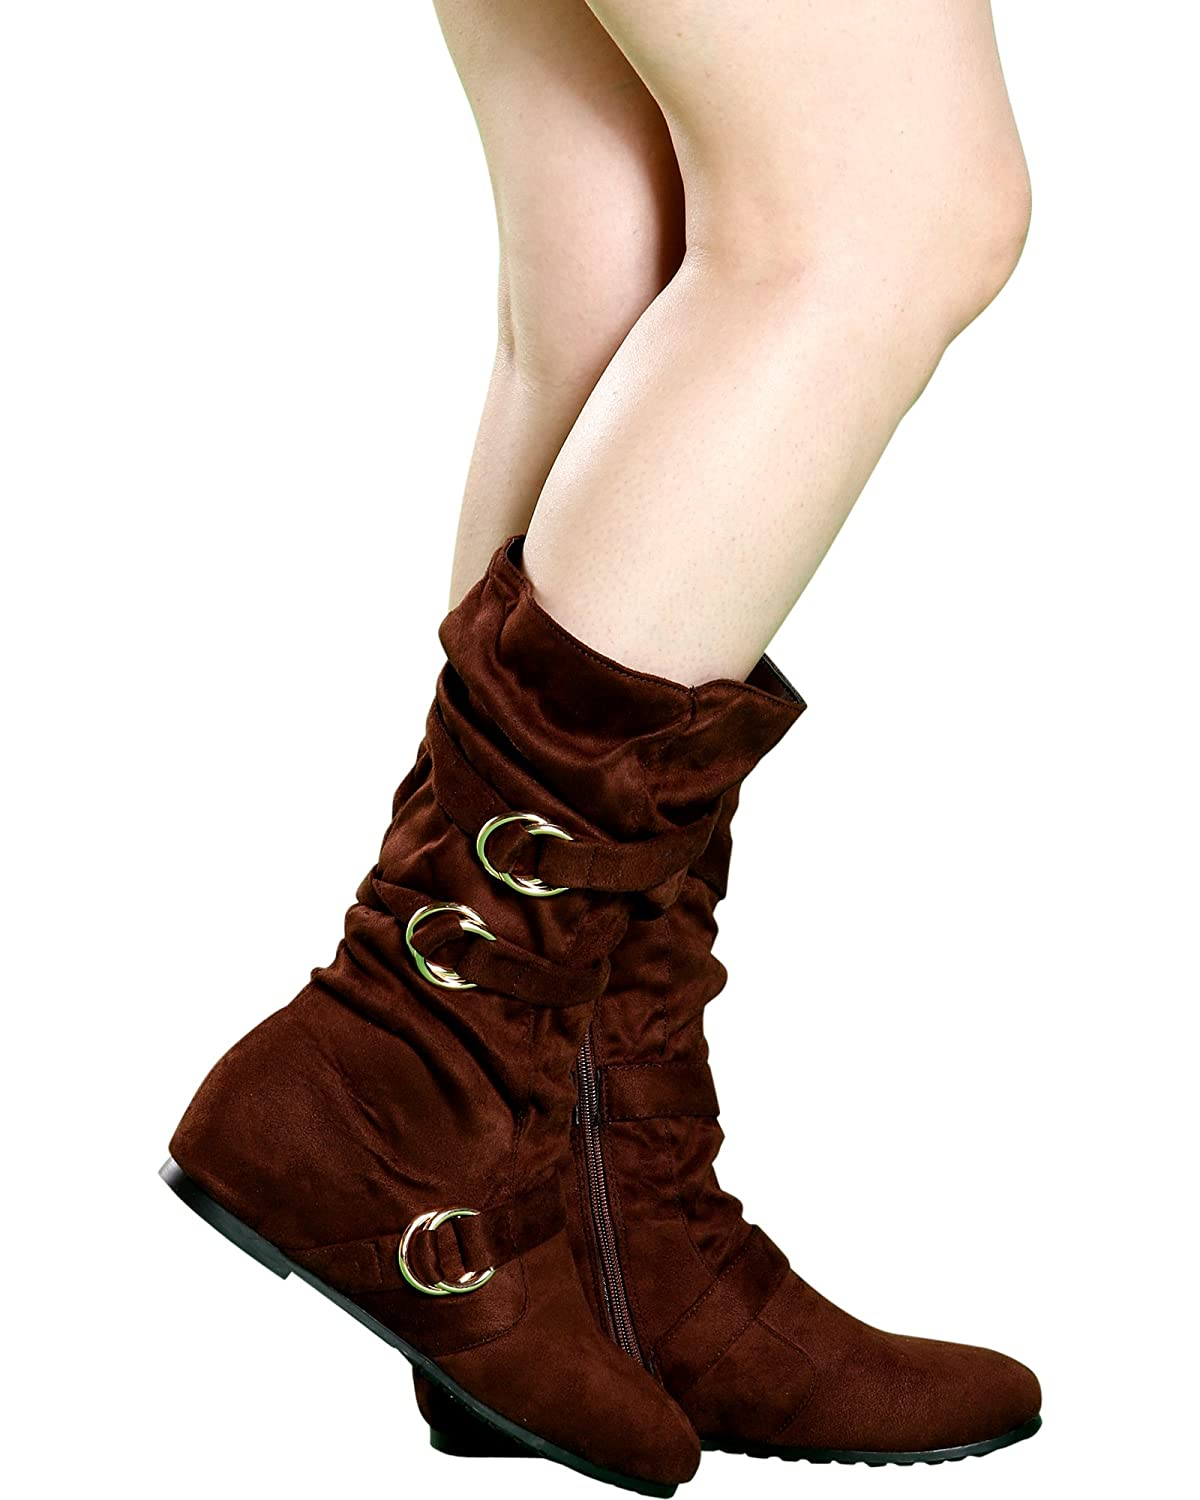 Black FOREVER Womens Casual Almond Toe 3 Silver Buckle Mid-Calf Zip Up Hidden Wedge Boot